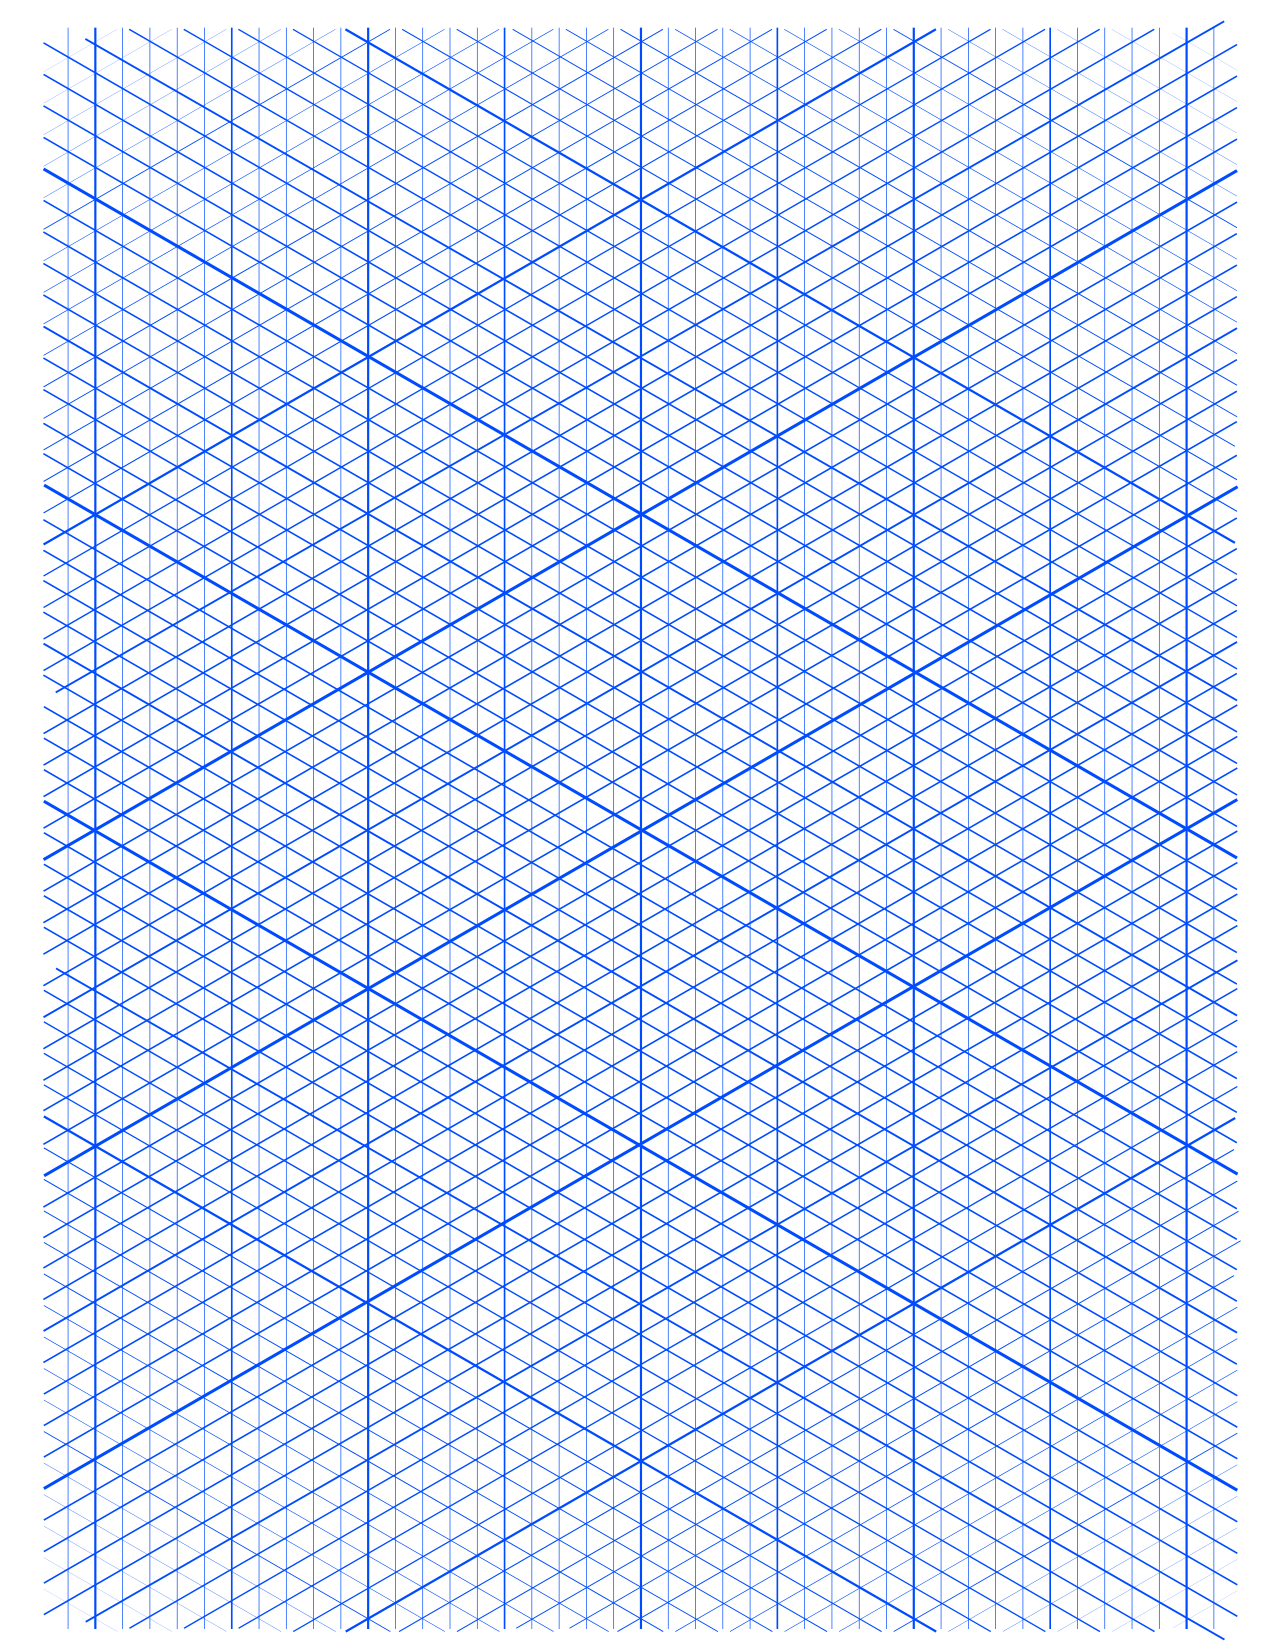 4 Free Printable Isometric Graph Paper Template